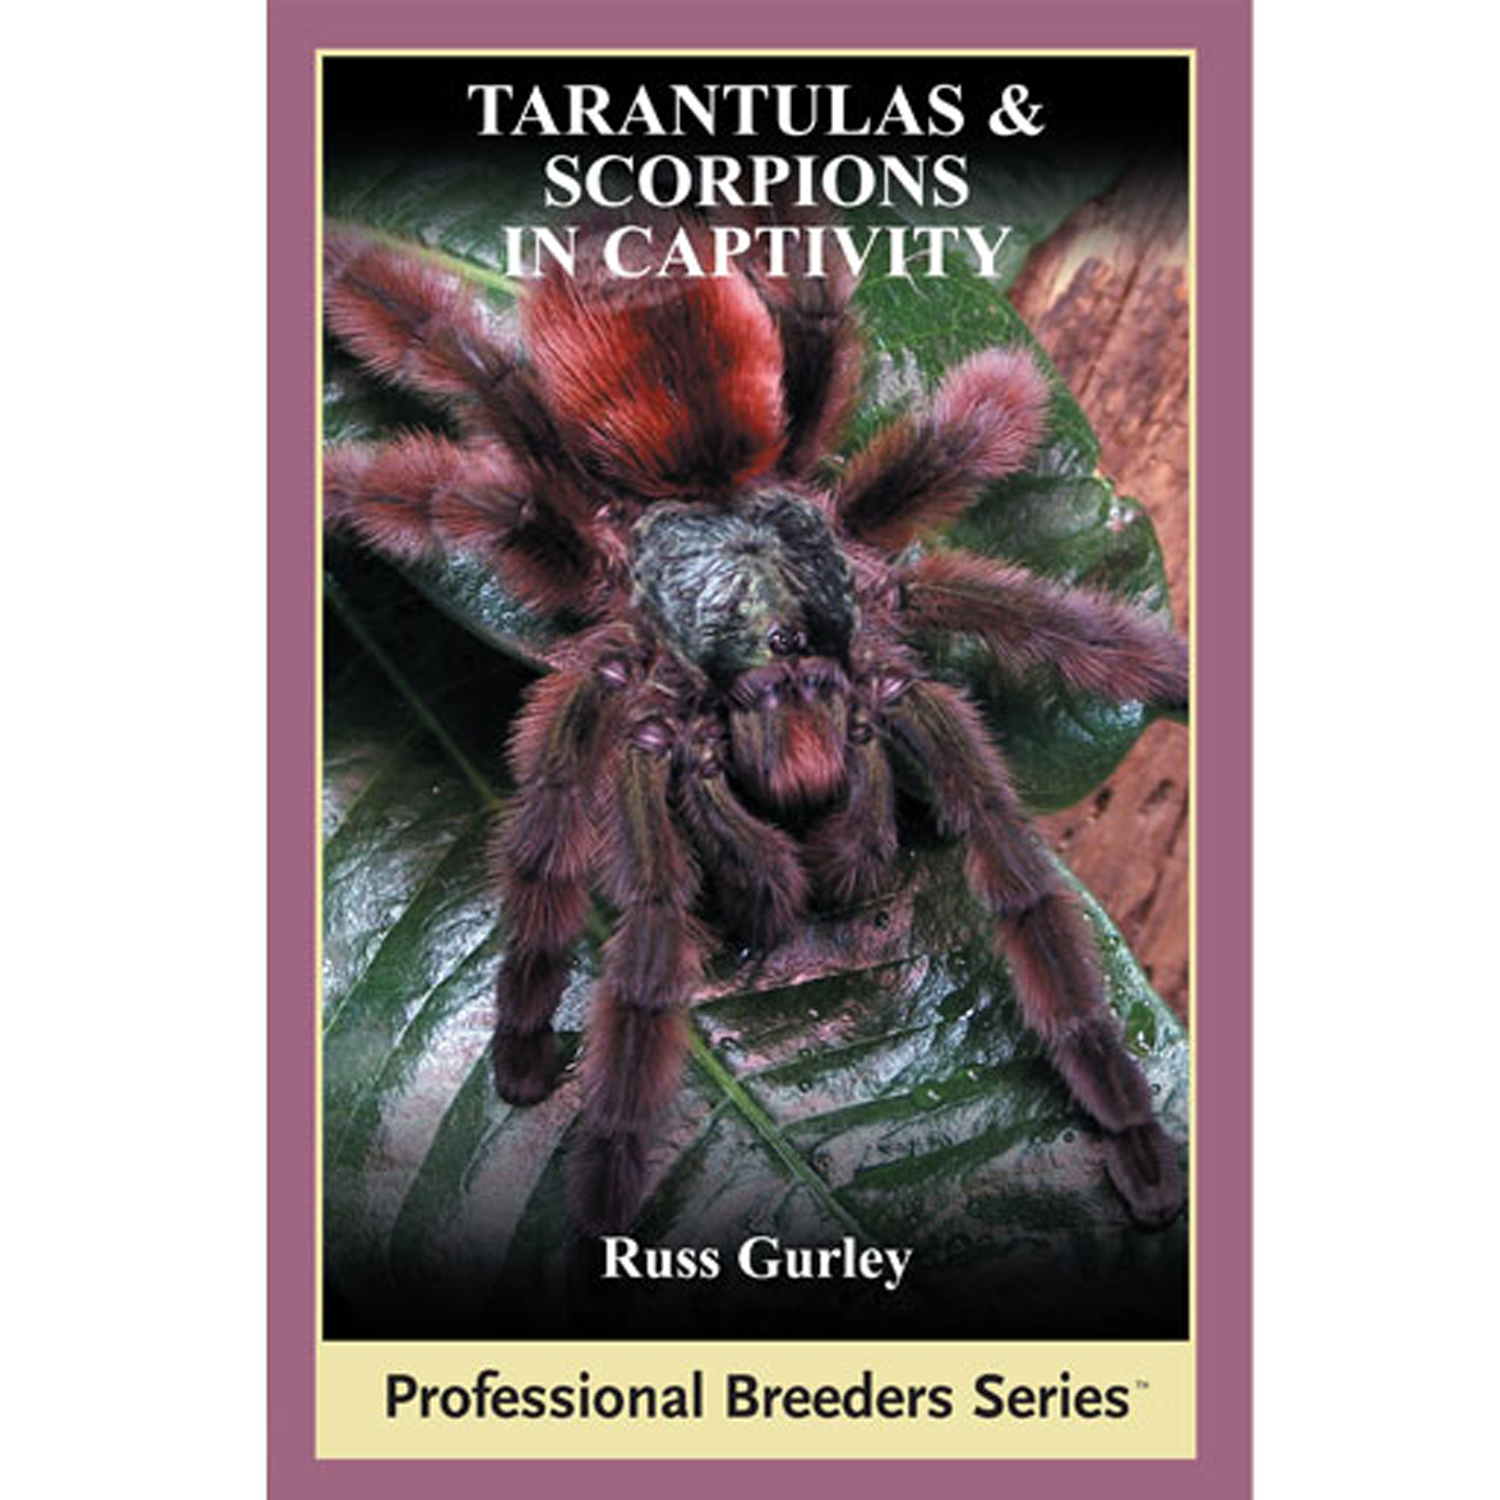 Tarantulas and Scorpions in Captivity